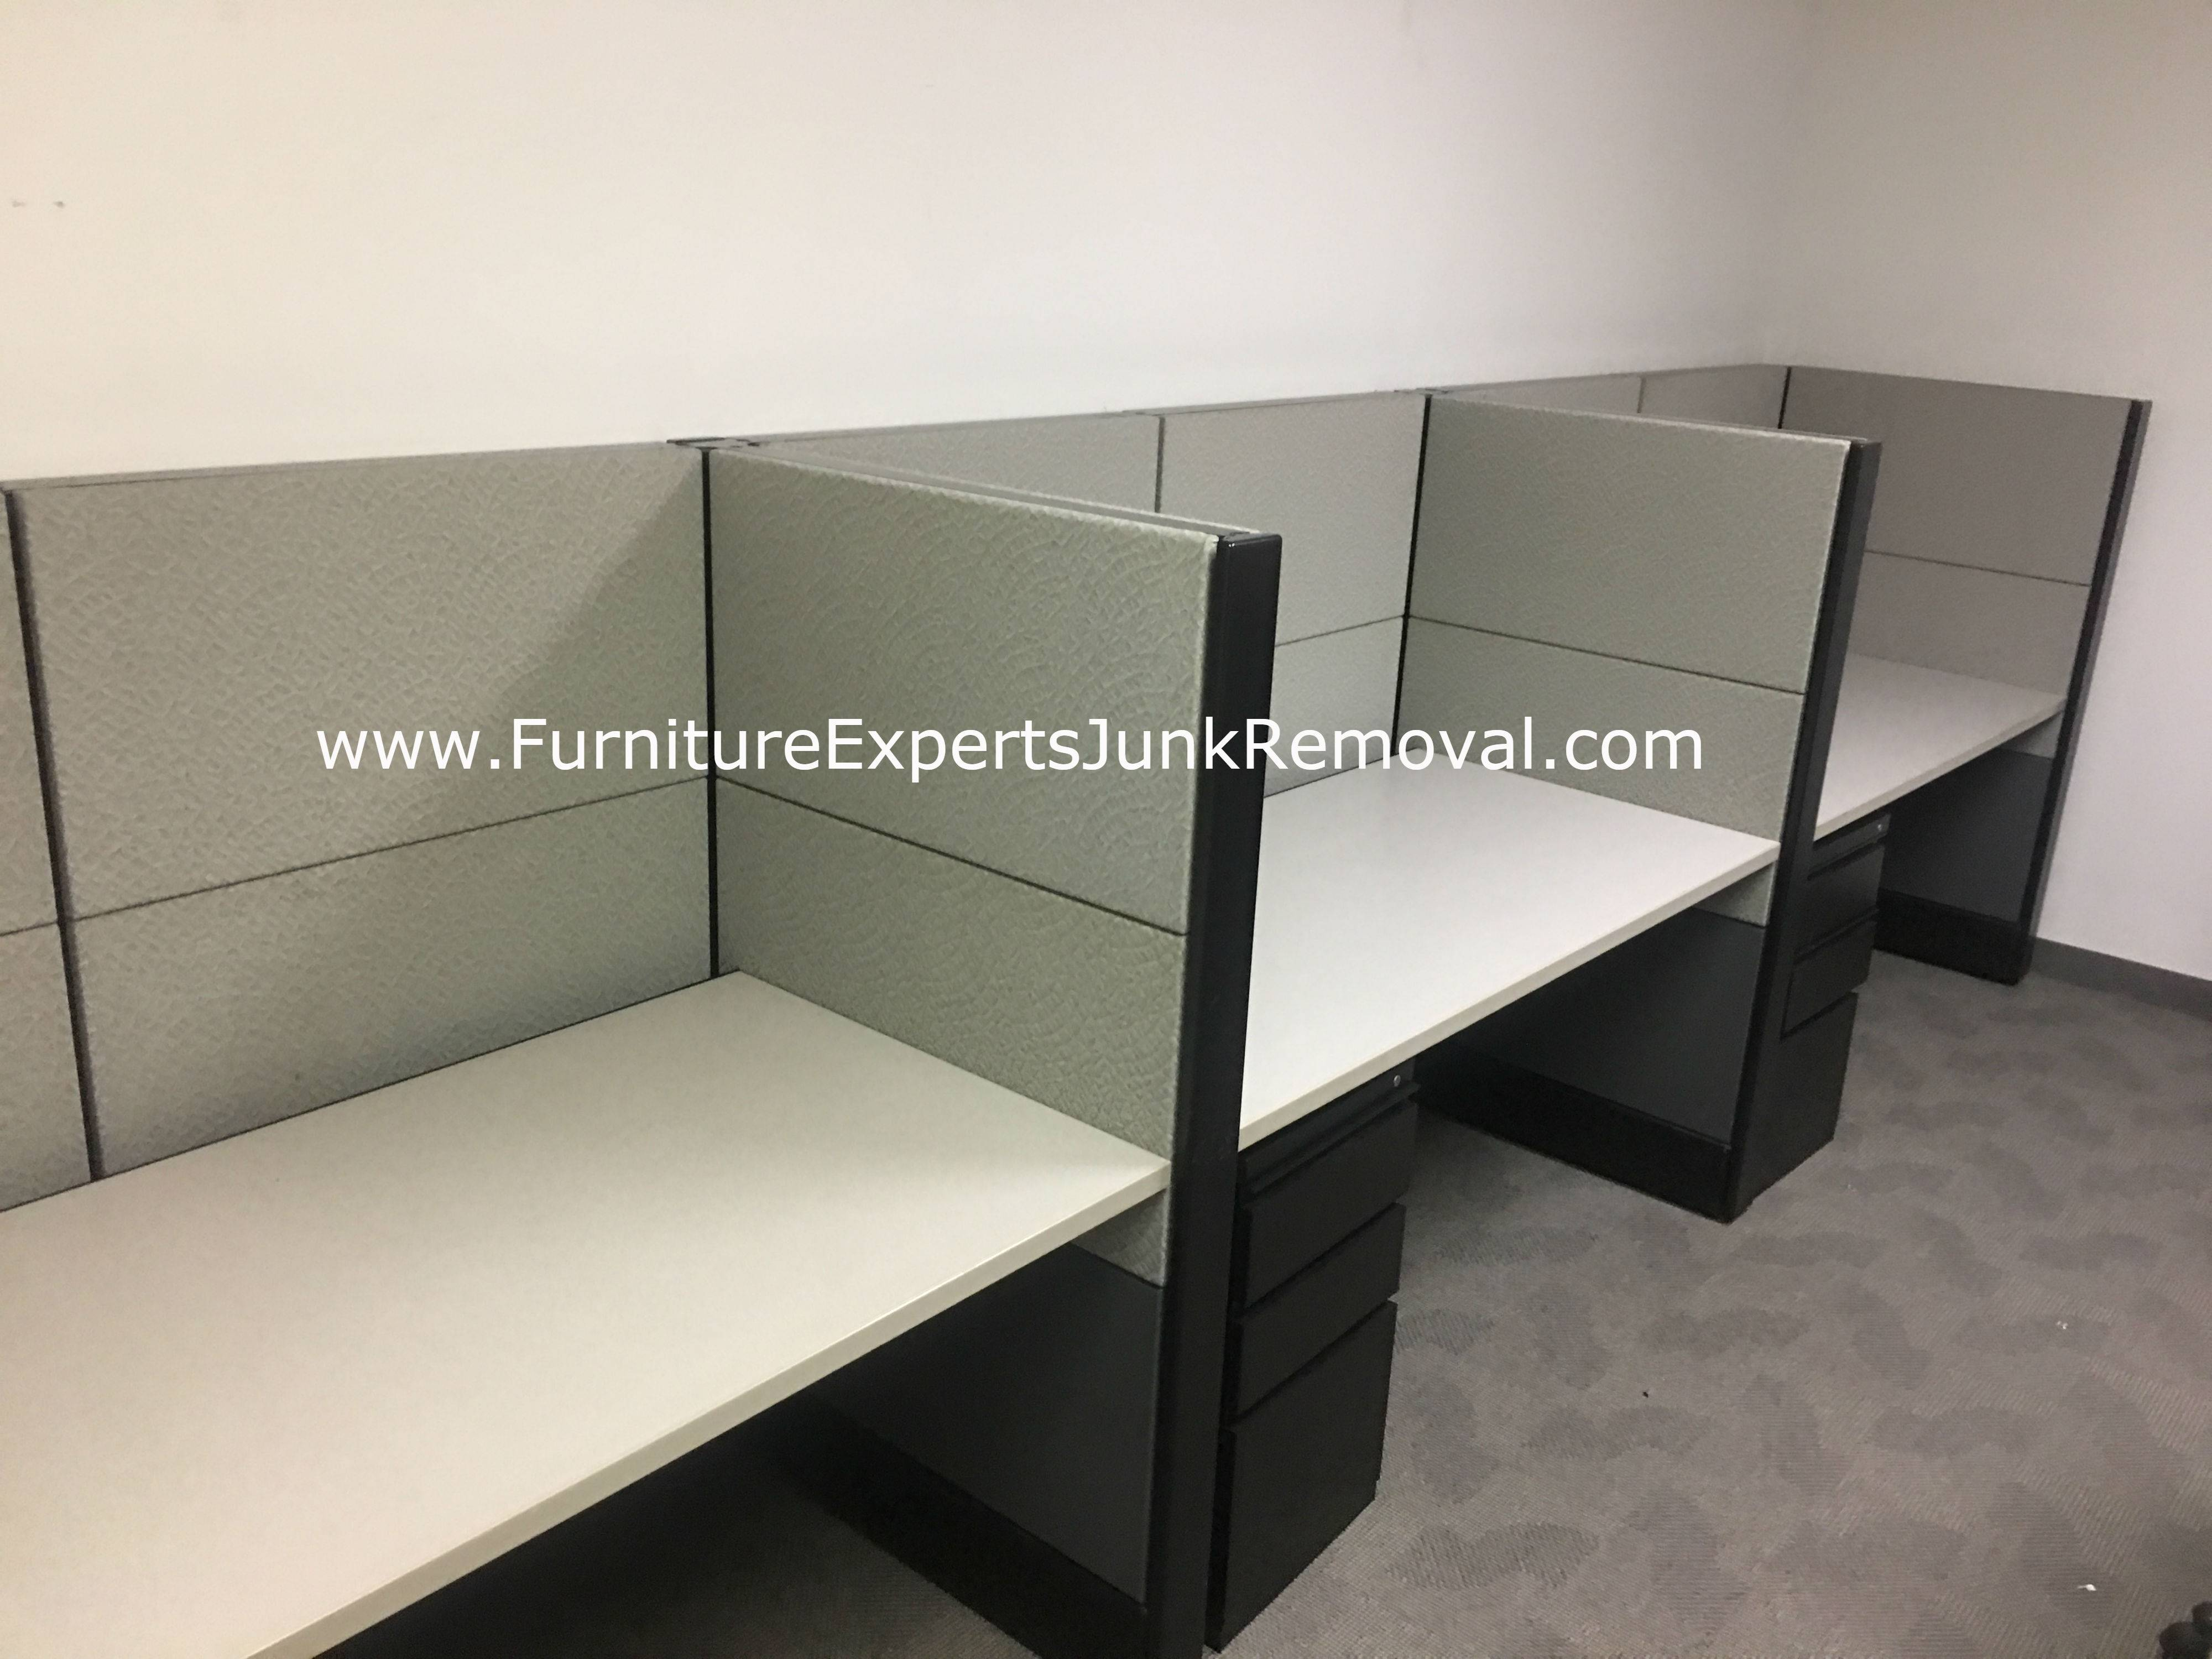 Junk office cubicle removal in gaithersburg MD